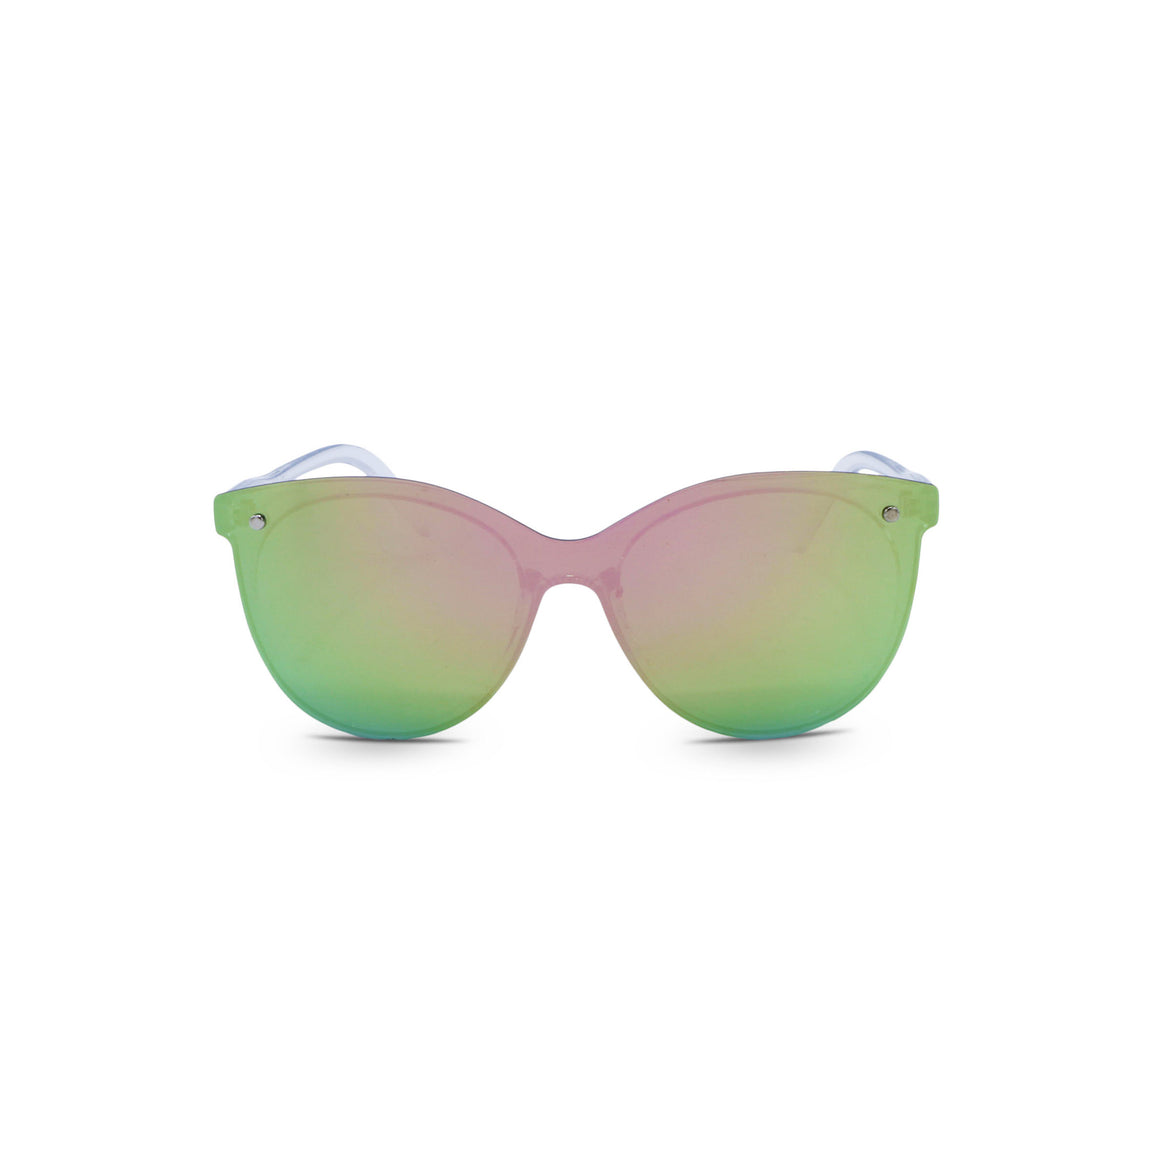 Retro Butterfly Sunglasses in Mirrored Pink Green Color